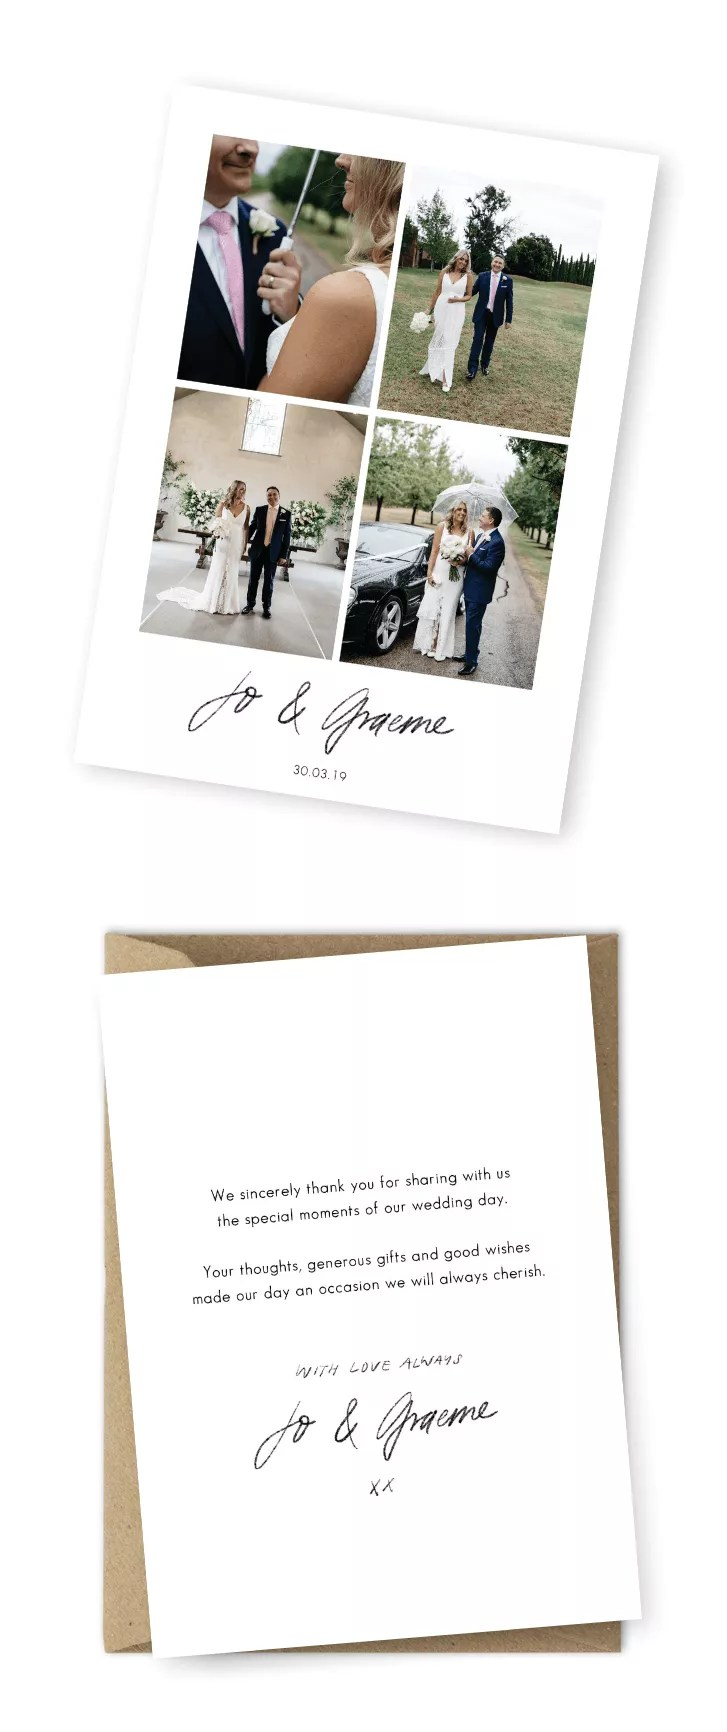 Thank You Message For Wedding Guests : thank, message, wedding, guests, Wedding, Thank, Cards, Wording, Samples, Bride, Groom